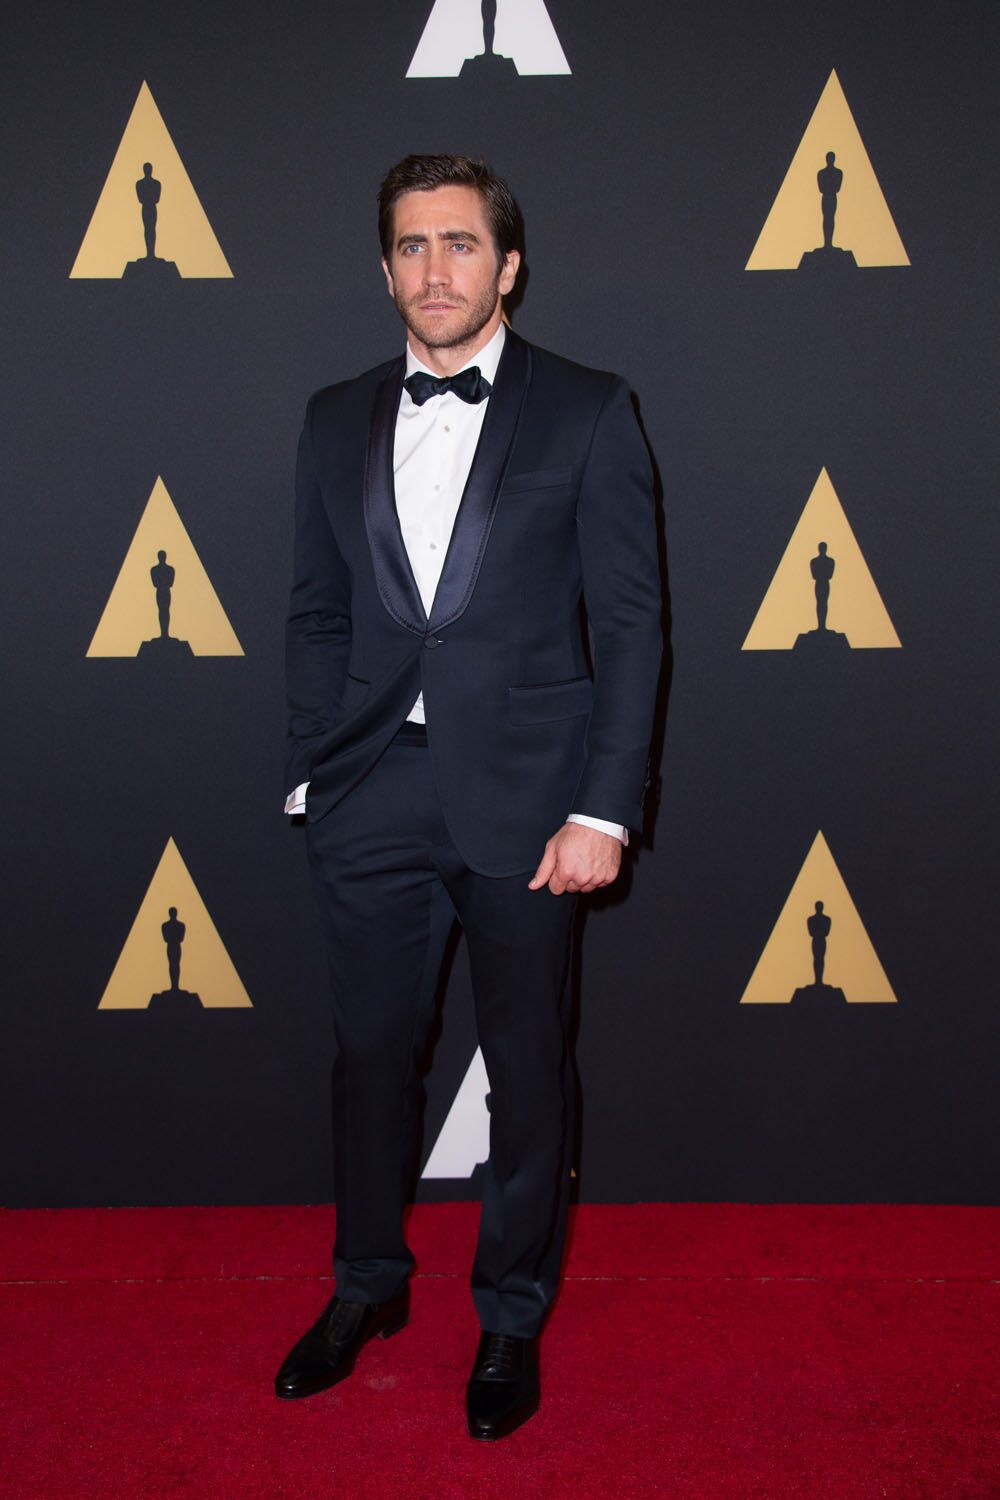 Jake Gyllenhaal at the 6th Annual Governors Awards